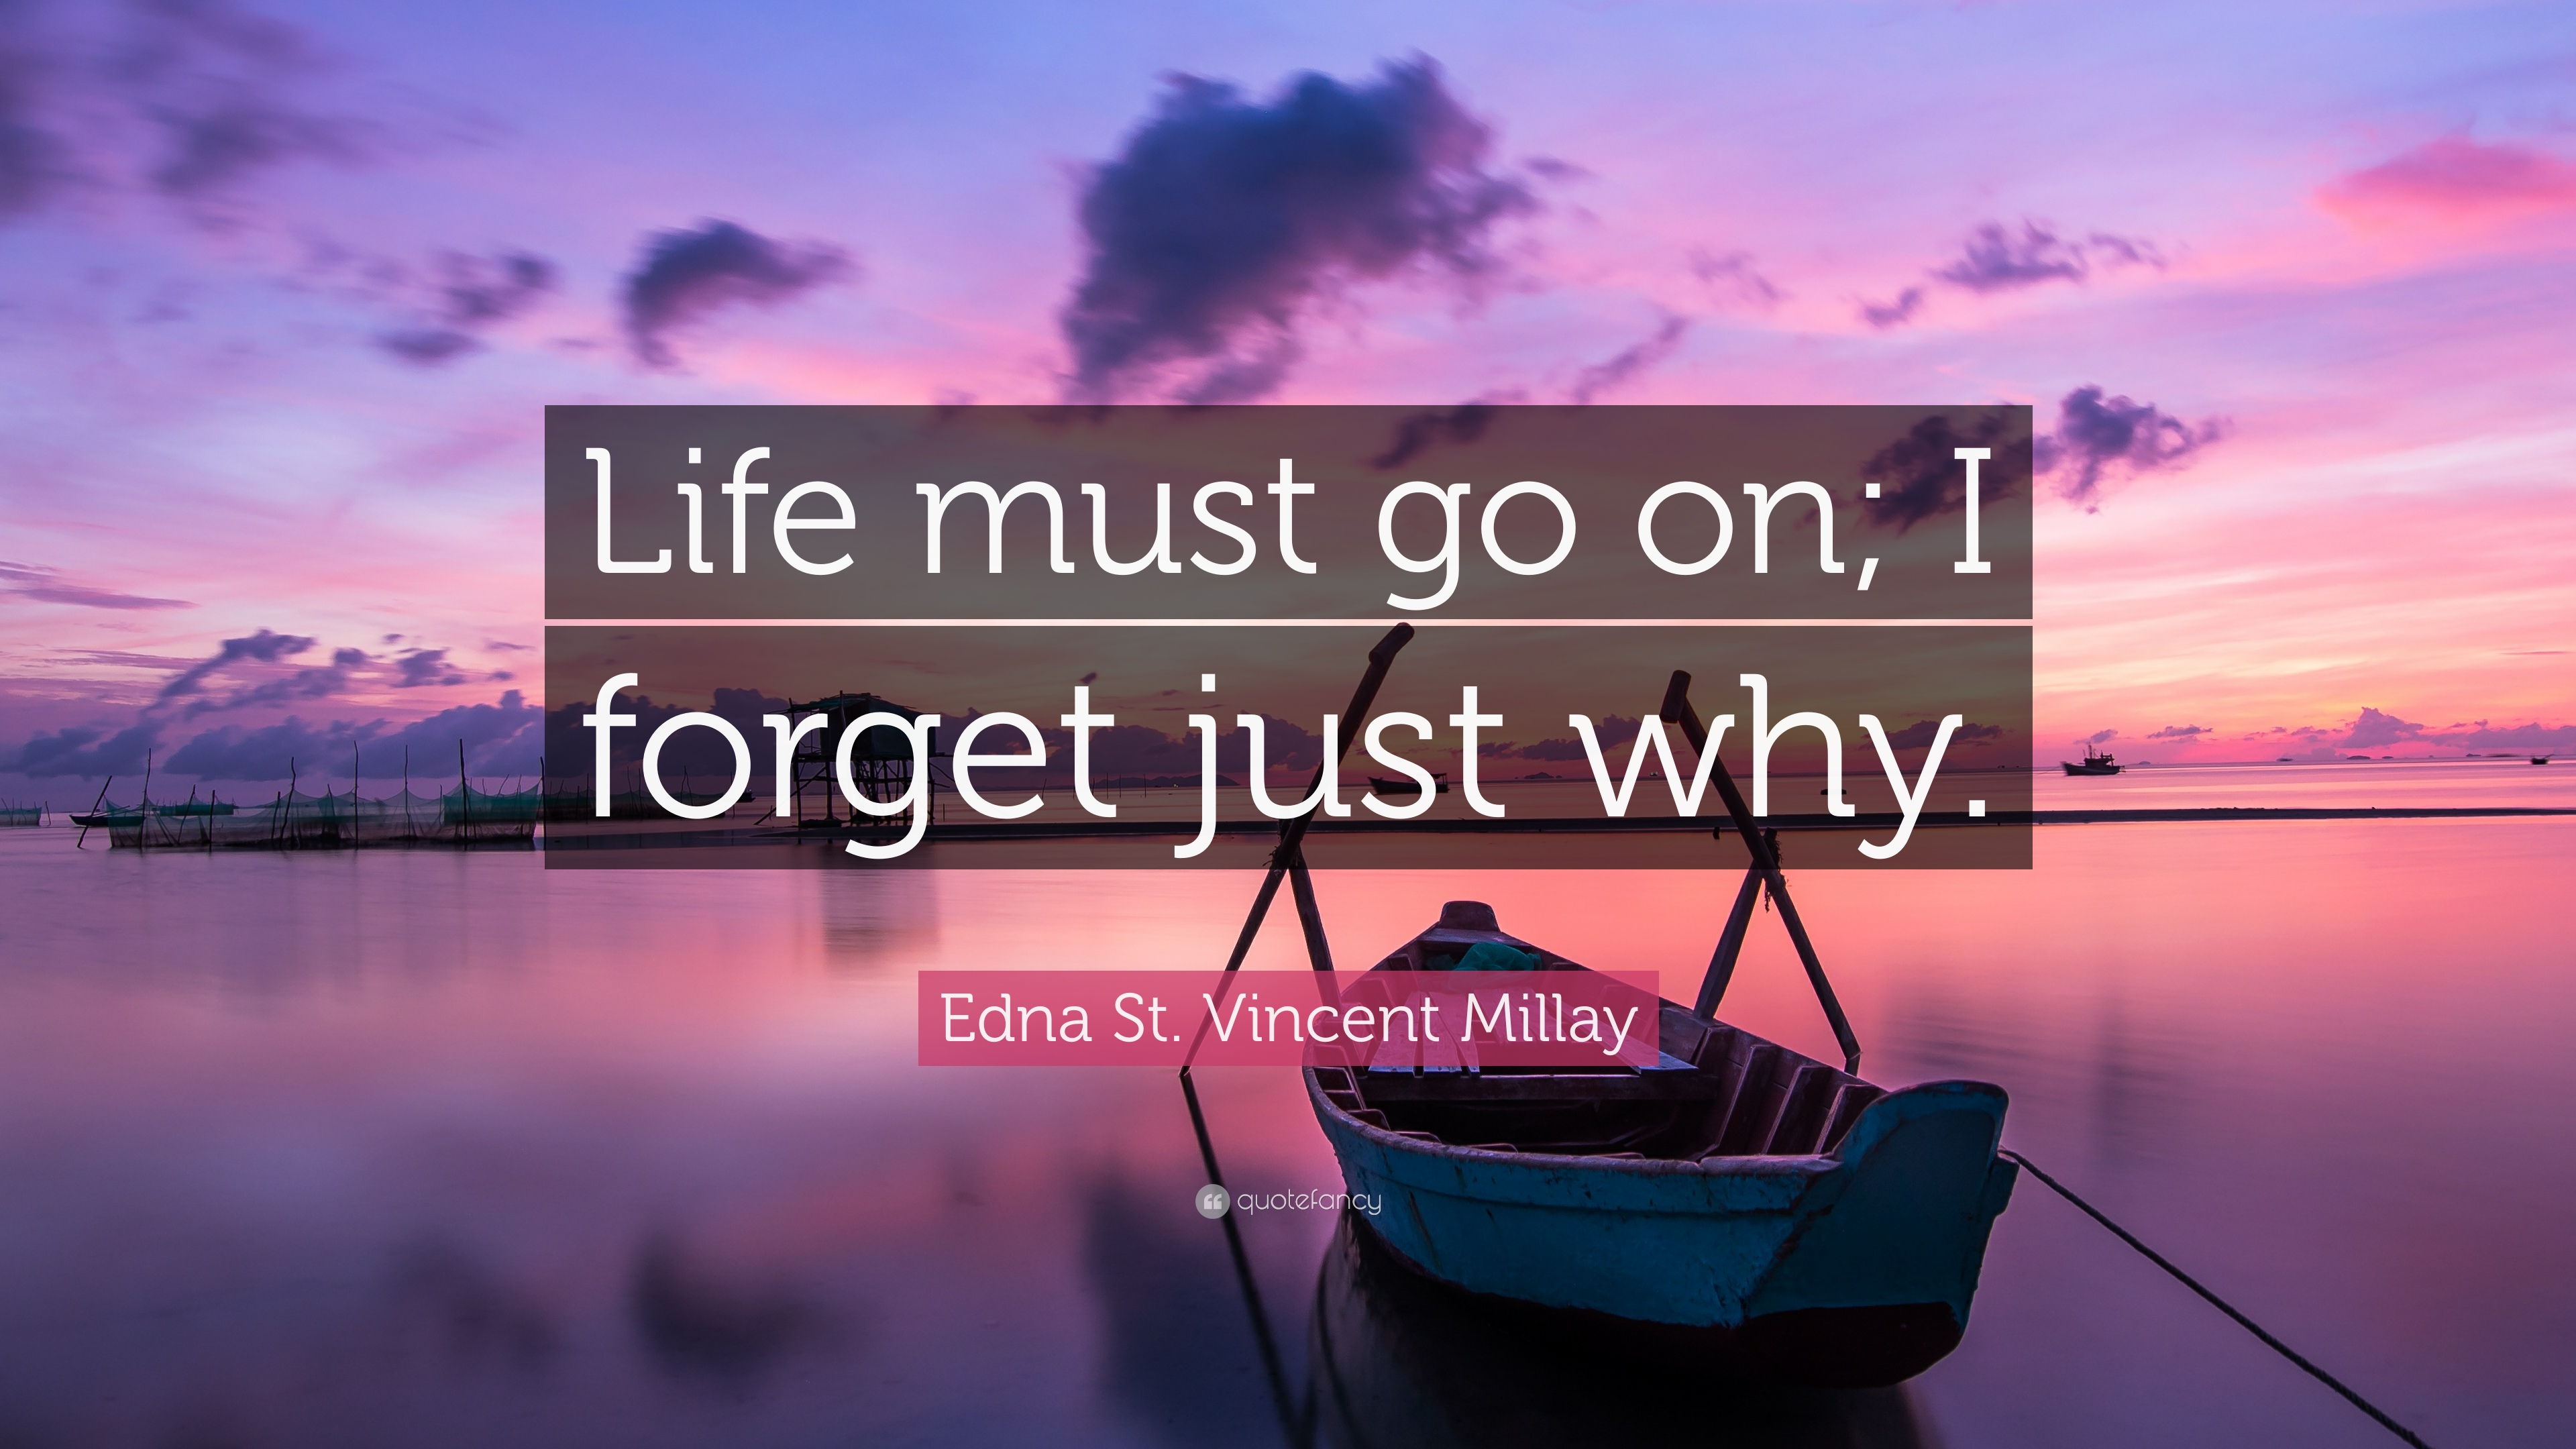 life must go on quotes